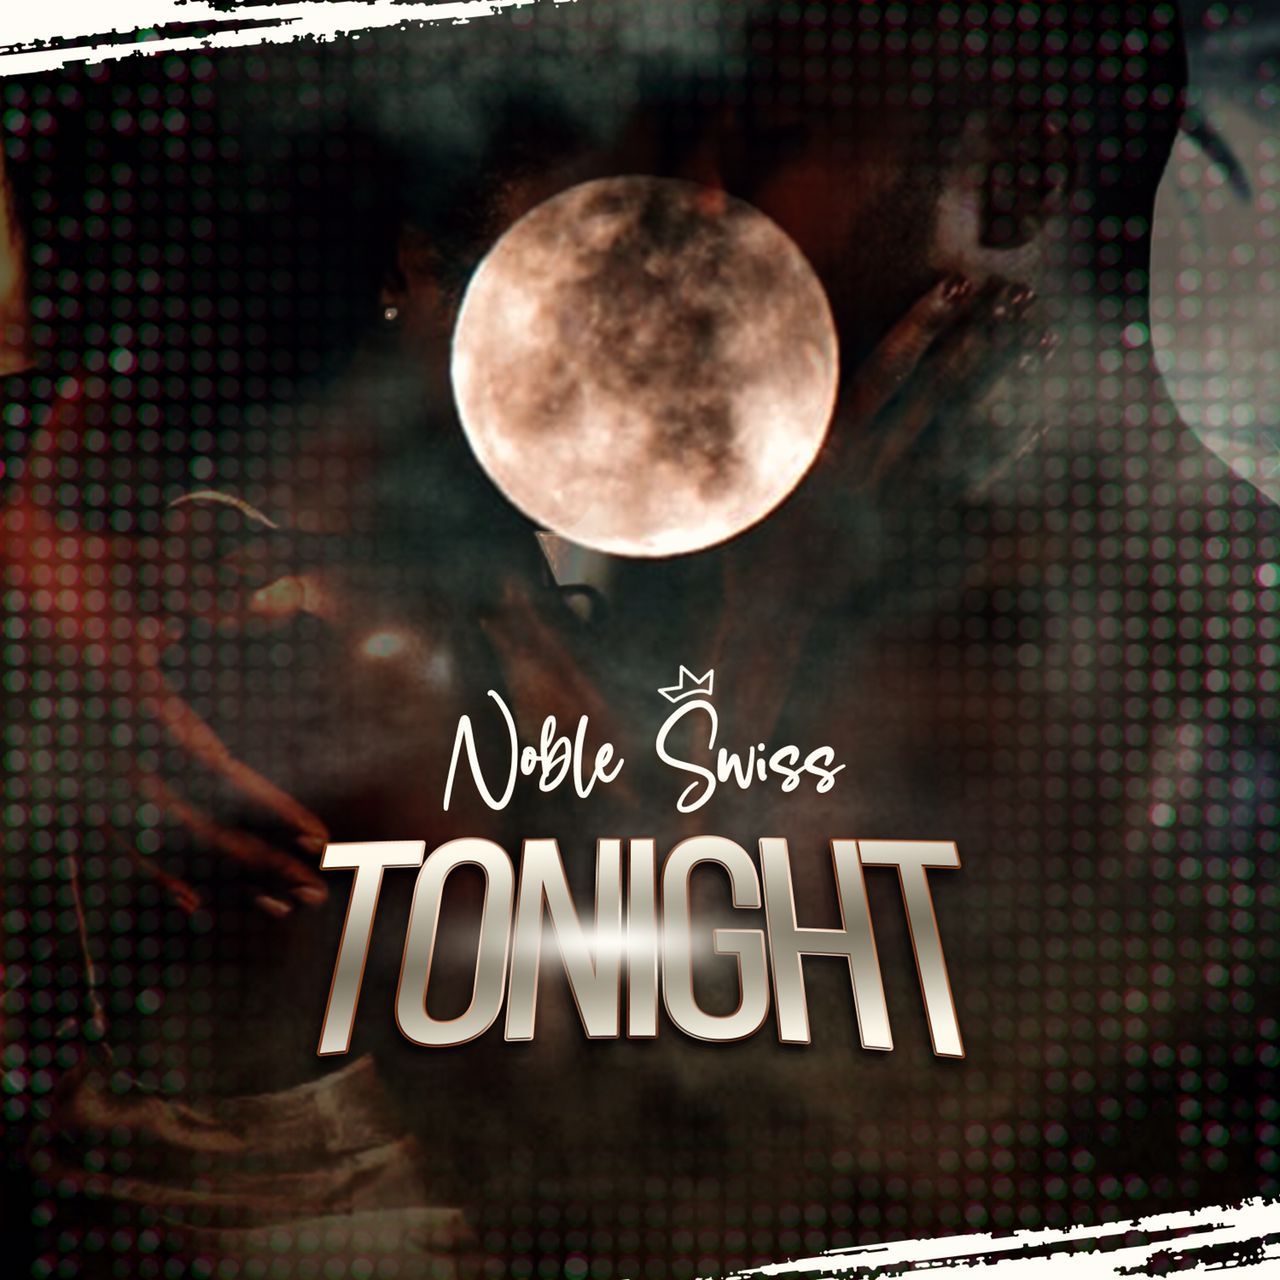 Noble Swiss  Tonight (New Song) mp3 download